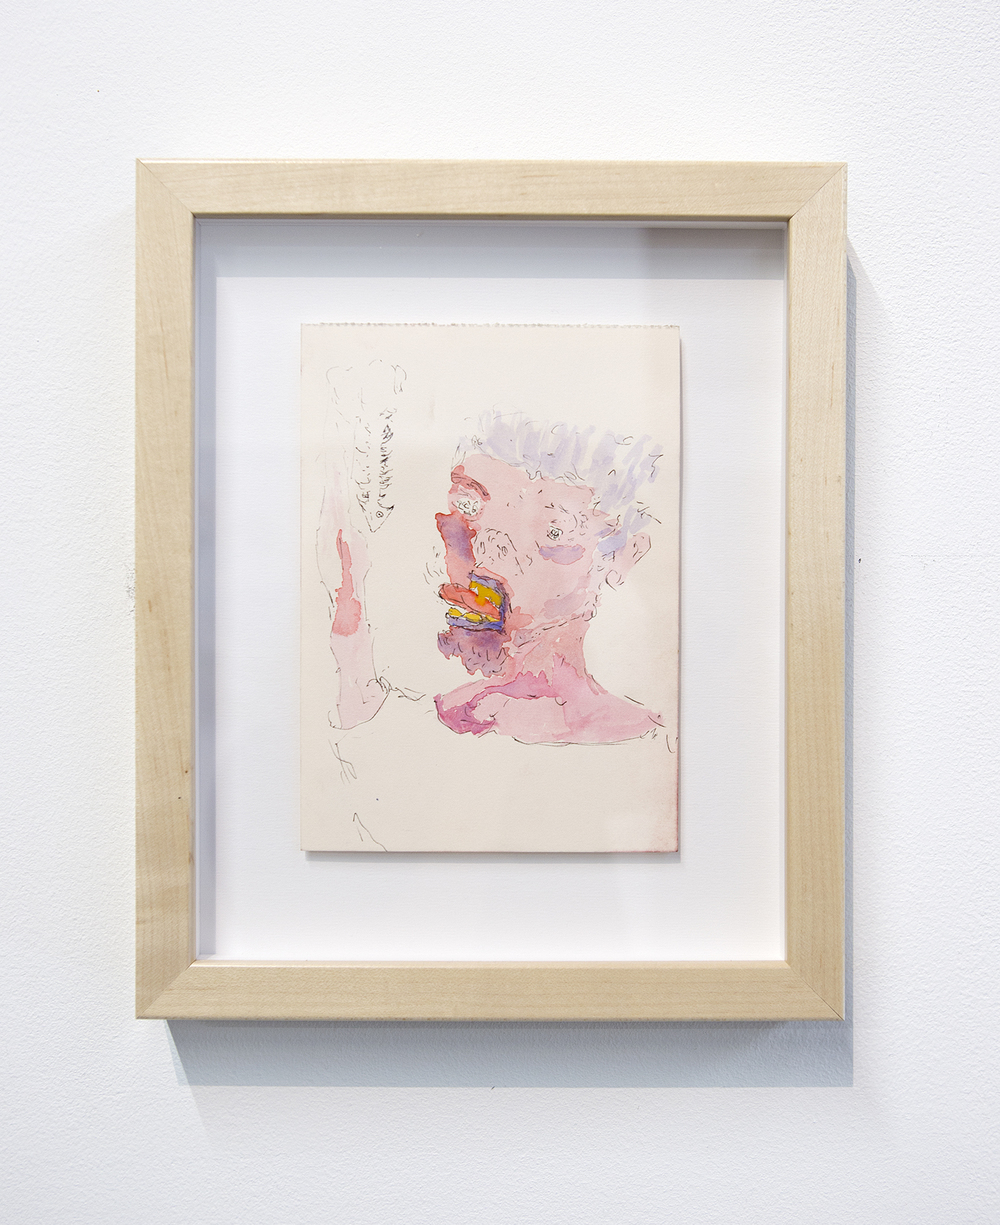 Henry Hopper, Untitled, 2015, watercolor and pen on paper, 7 x 5 inches